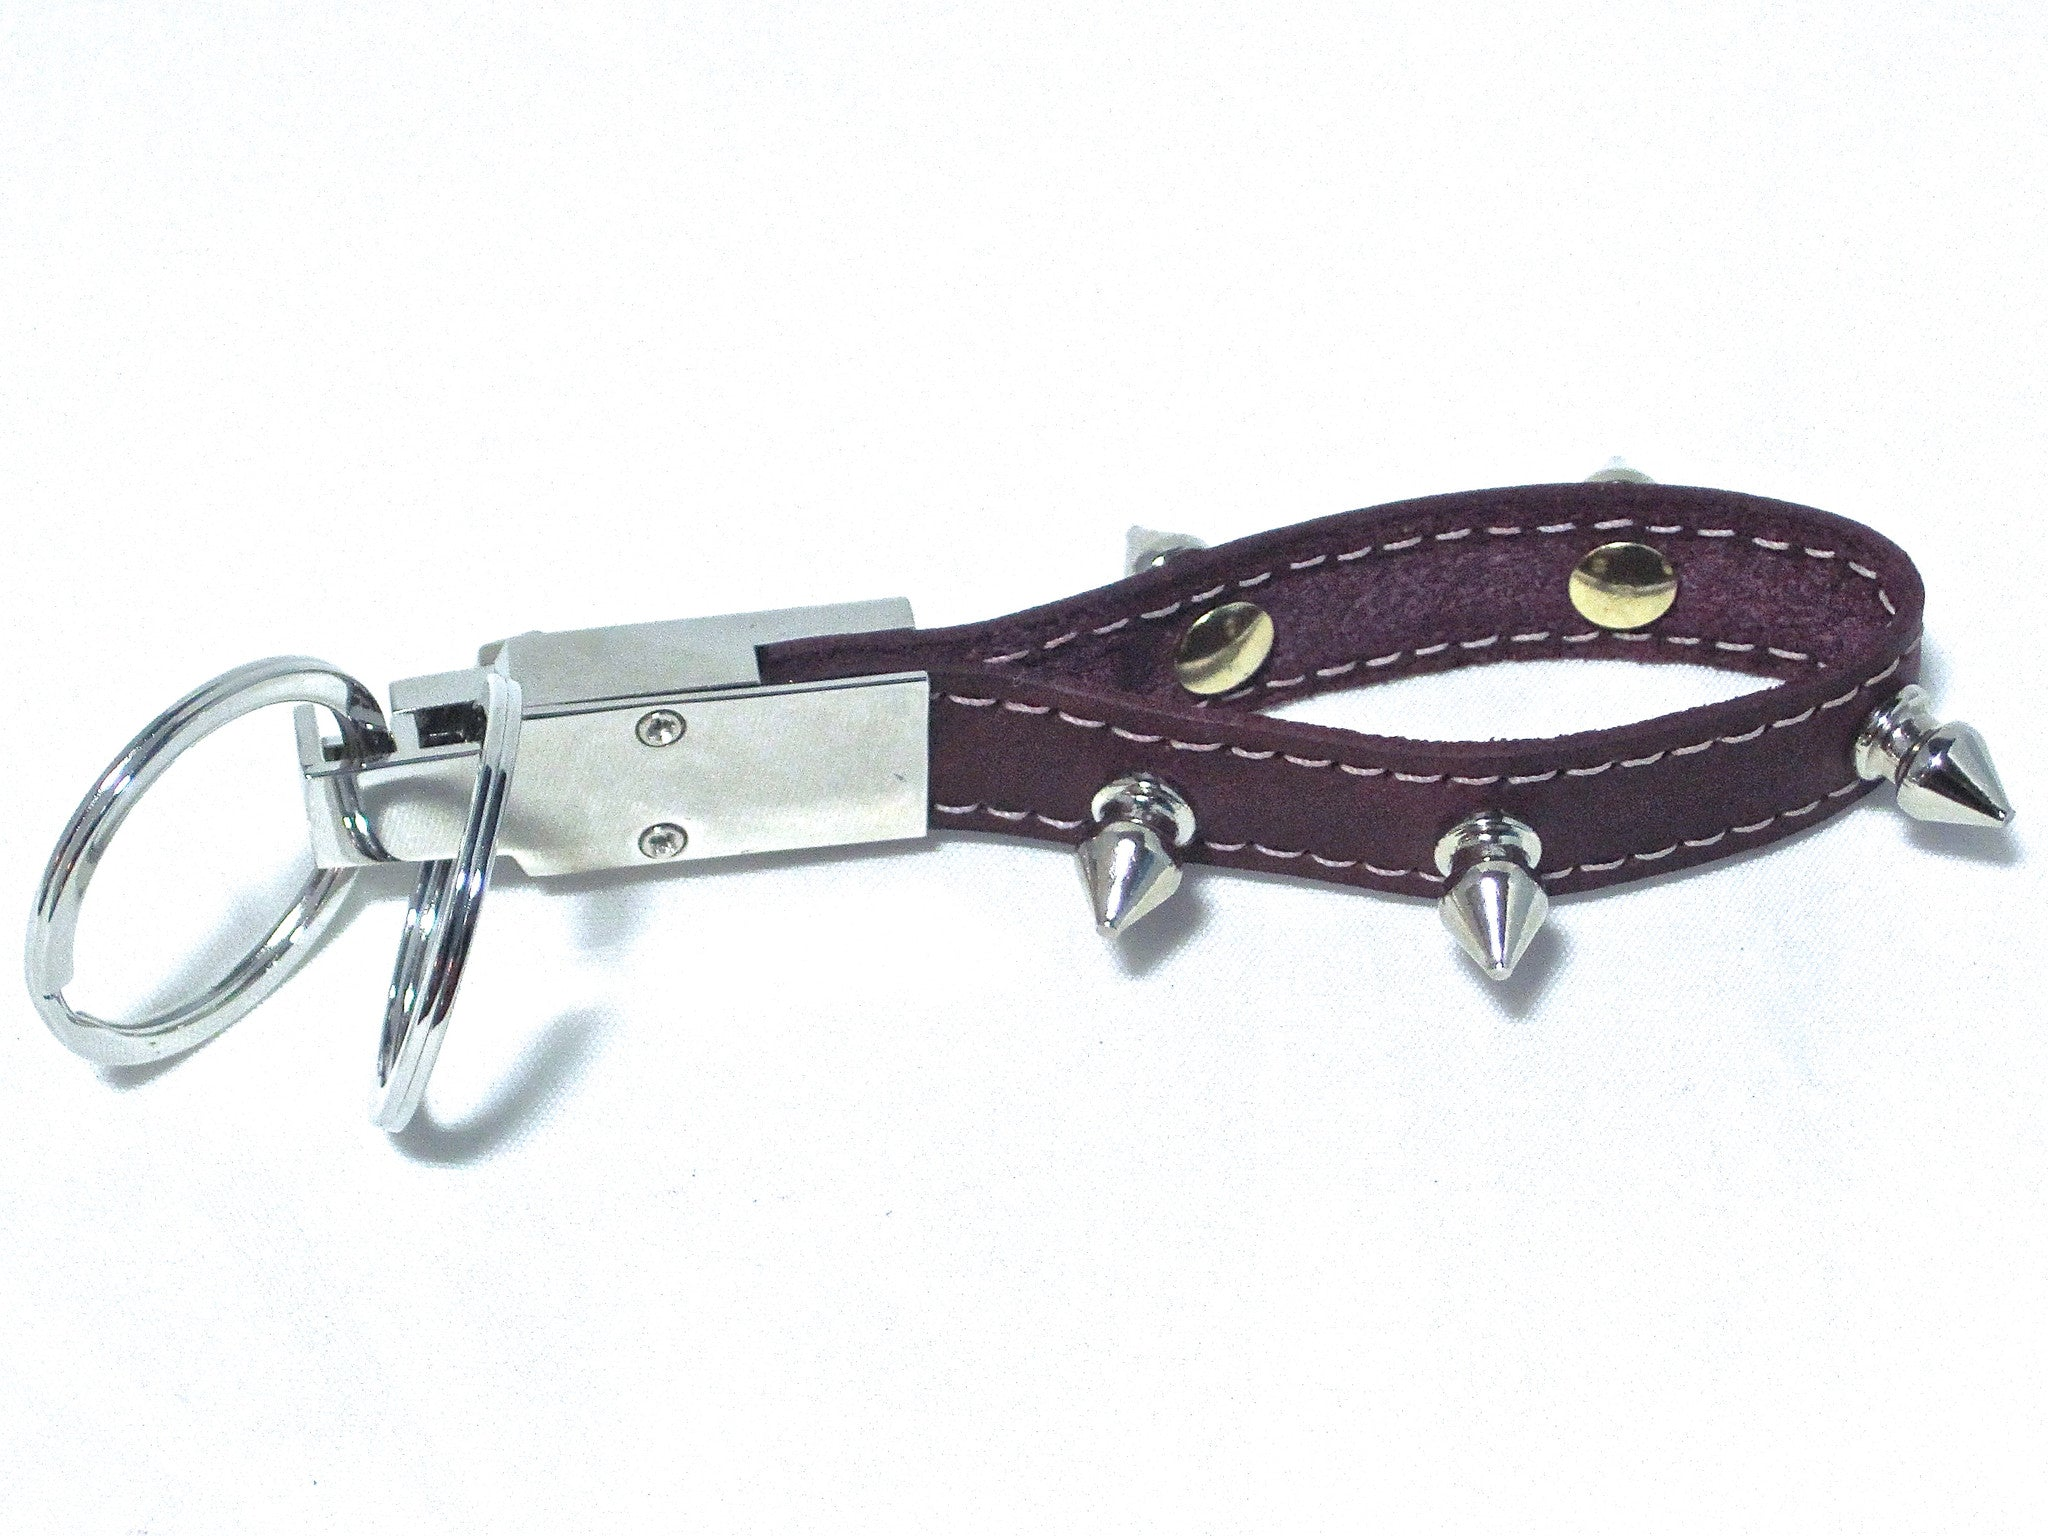 leather and spike rivets key chain by nyet jewelry.